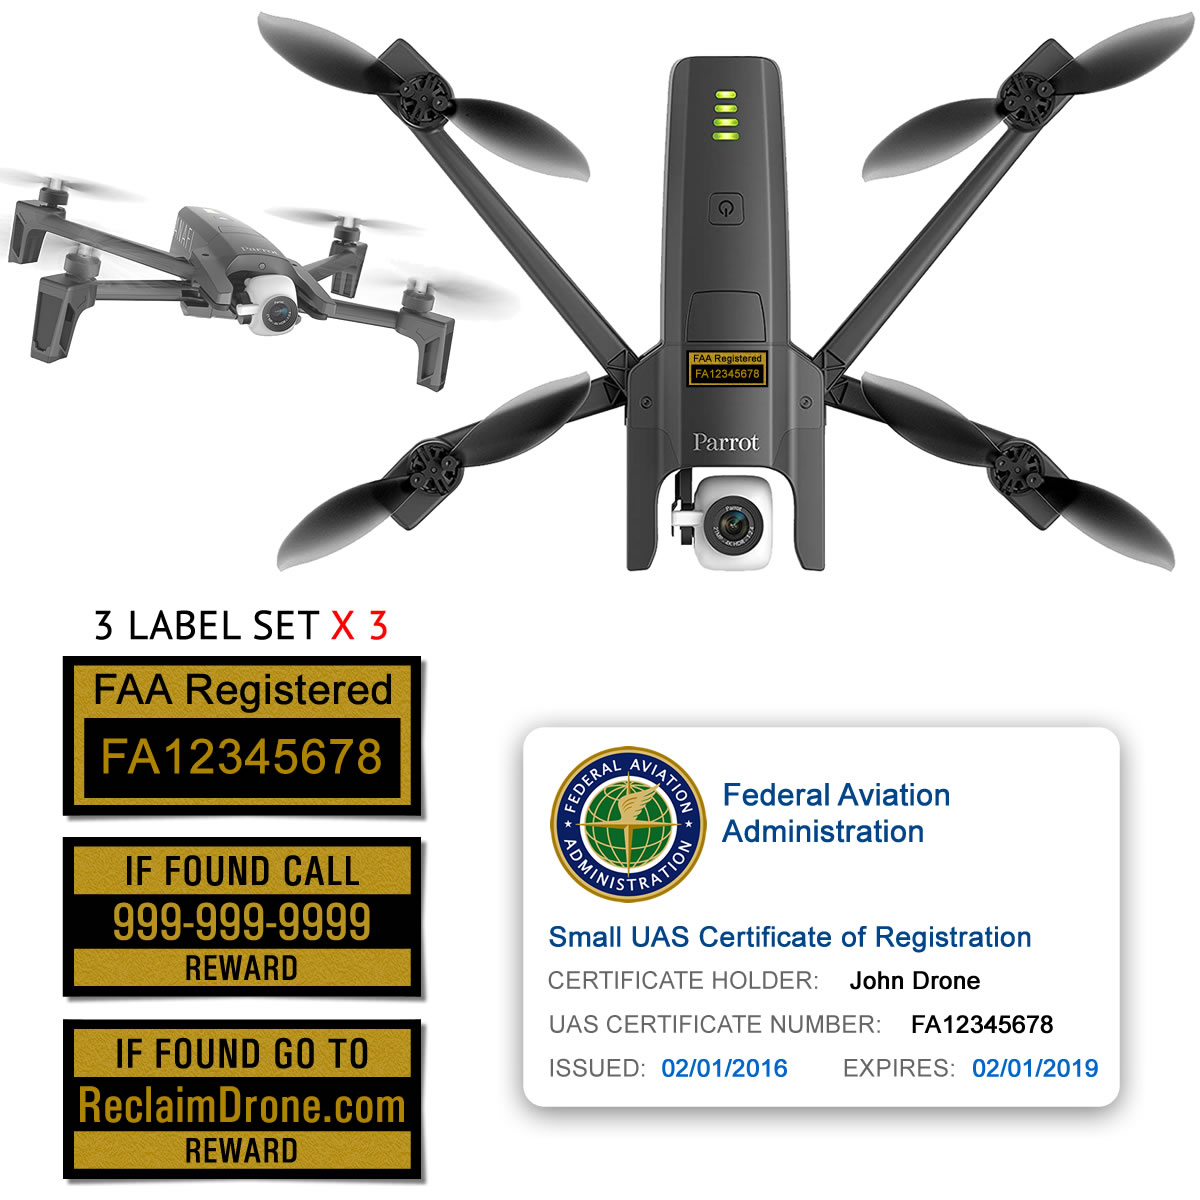 Parrot Anafi FAA Certificate Registration ID card and label bundle for hobbyist drone pilots